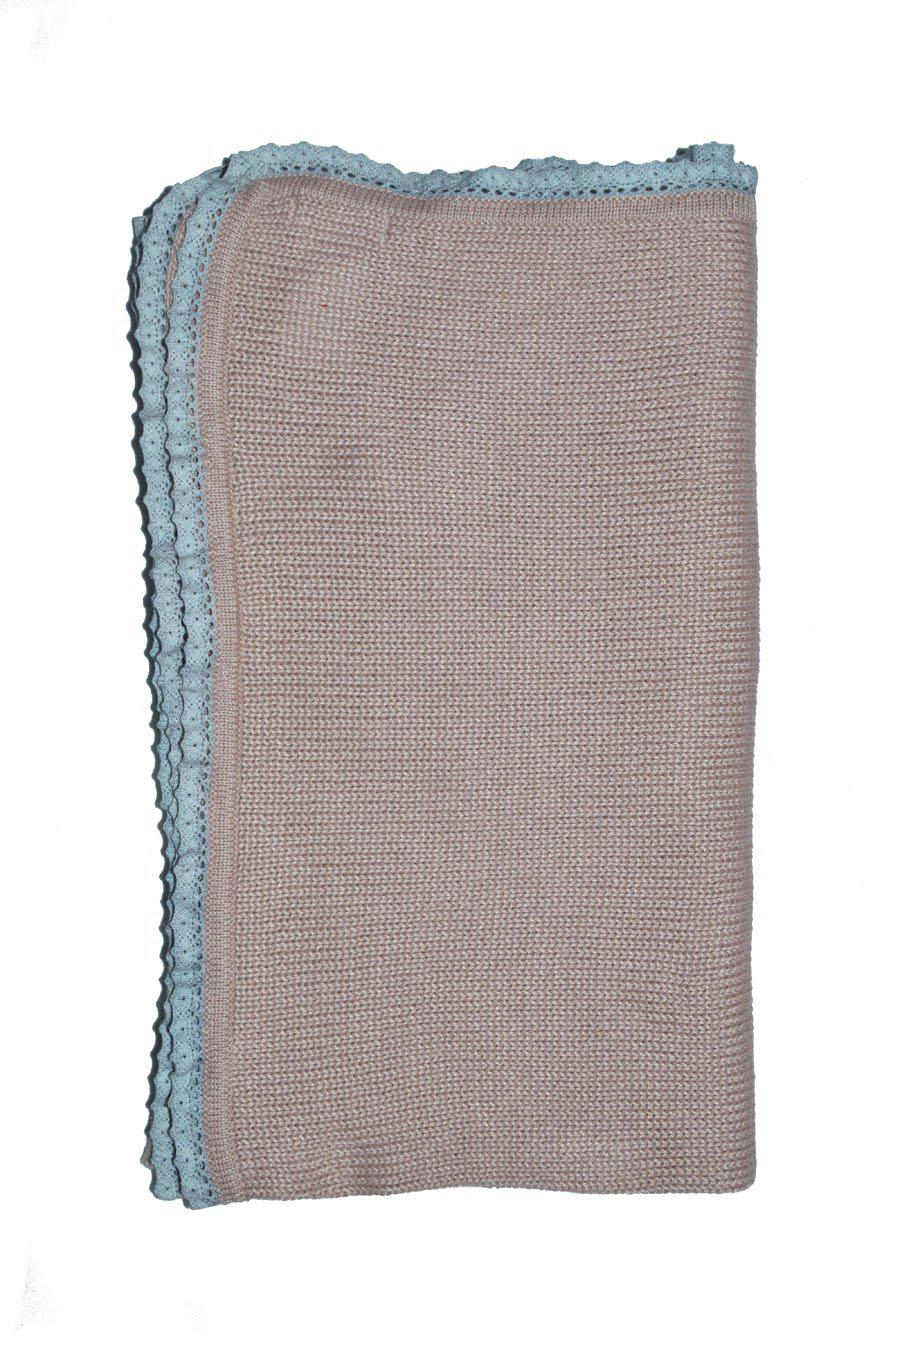 Dusty Pink Baby Alpaca Blanket with Grey Trim - Little Threads Inc. Children's Clothing